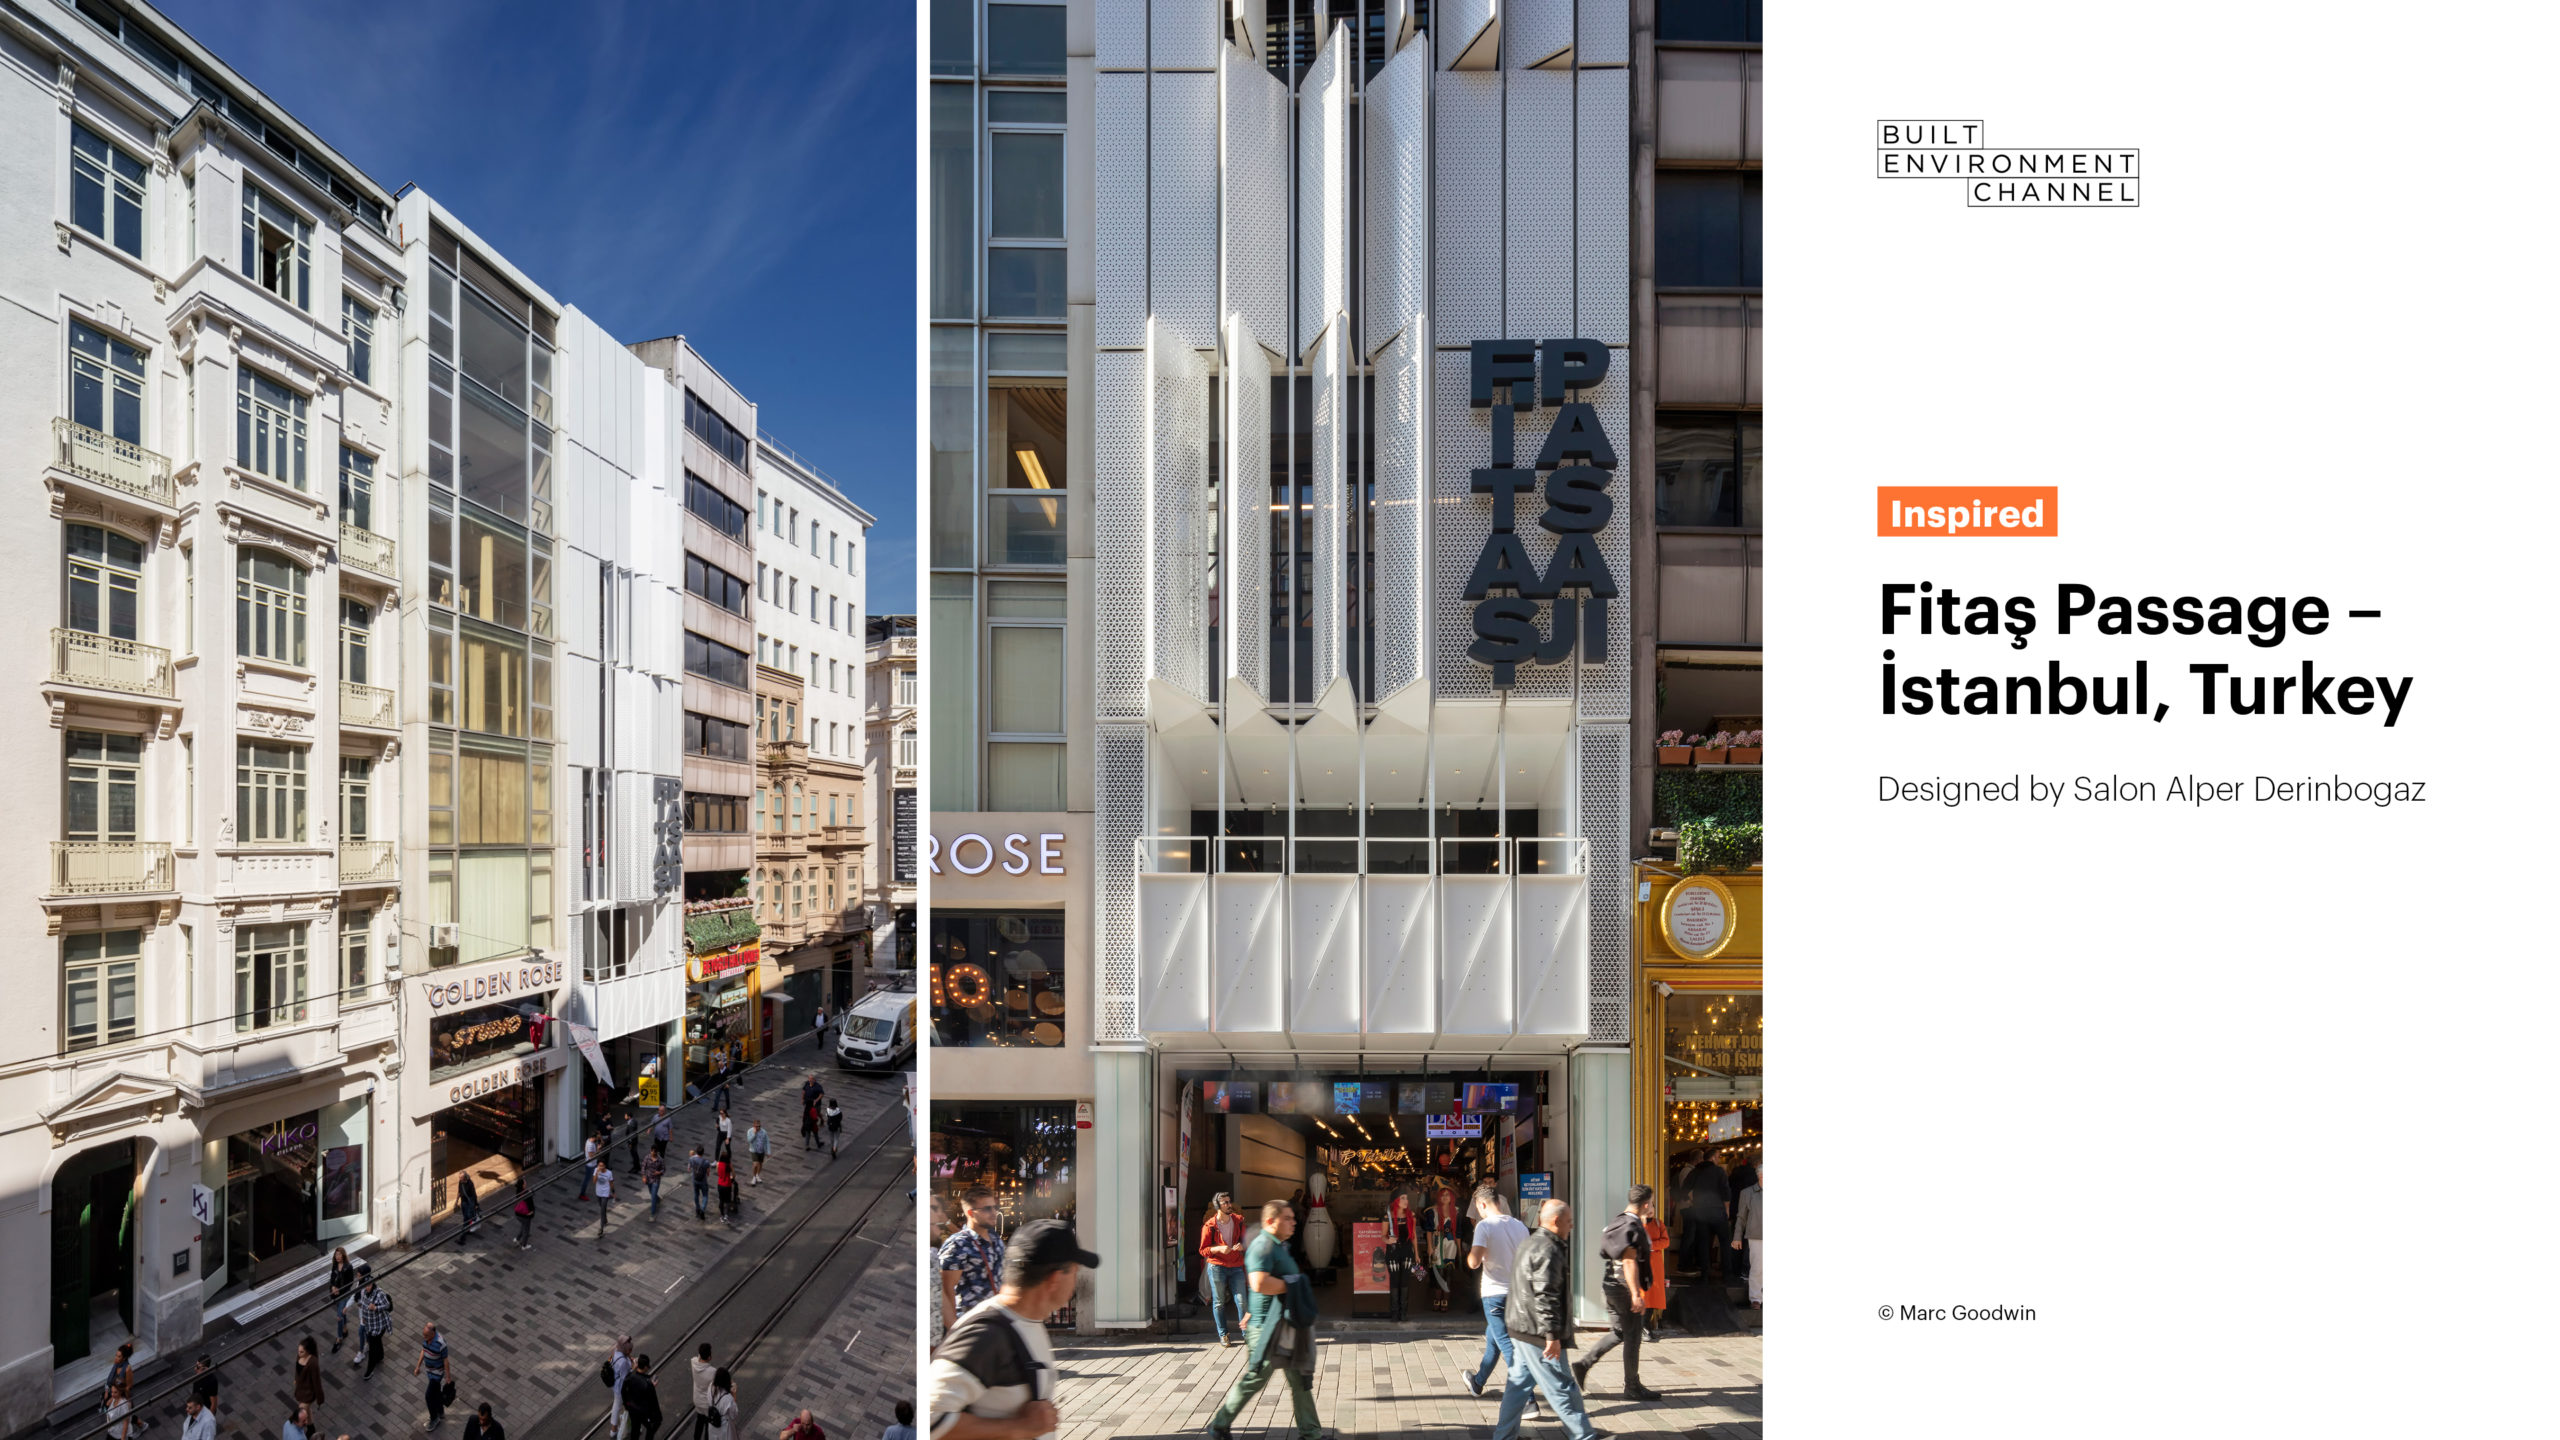 Fitas Passage shared on the Built Environment Channel in Australia